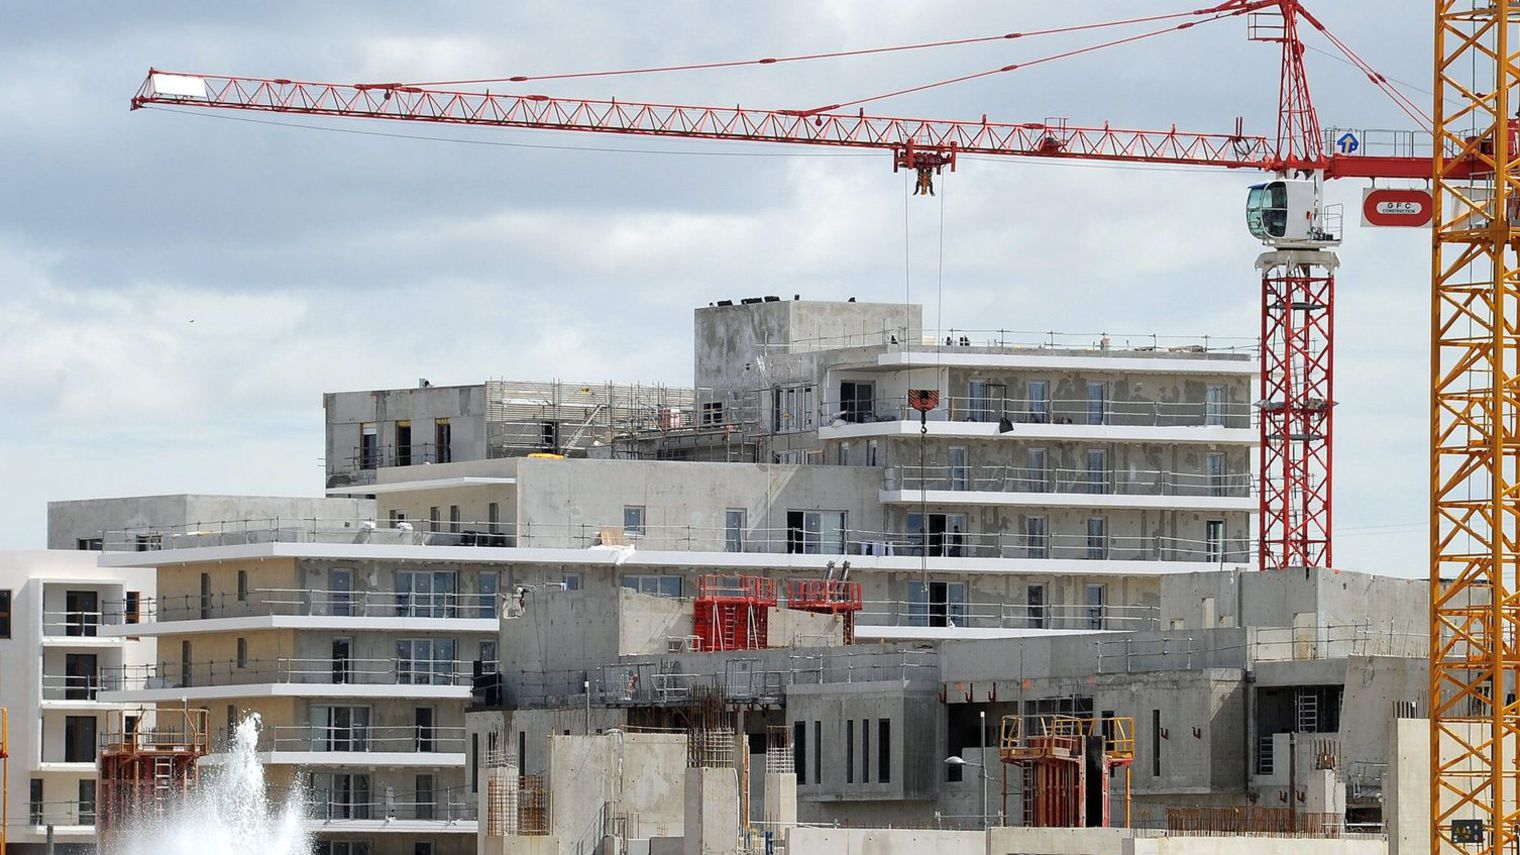 immobilier-neuf-construction_4009569